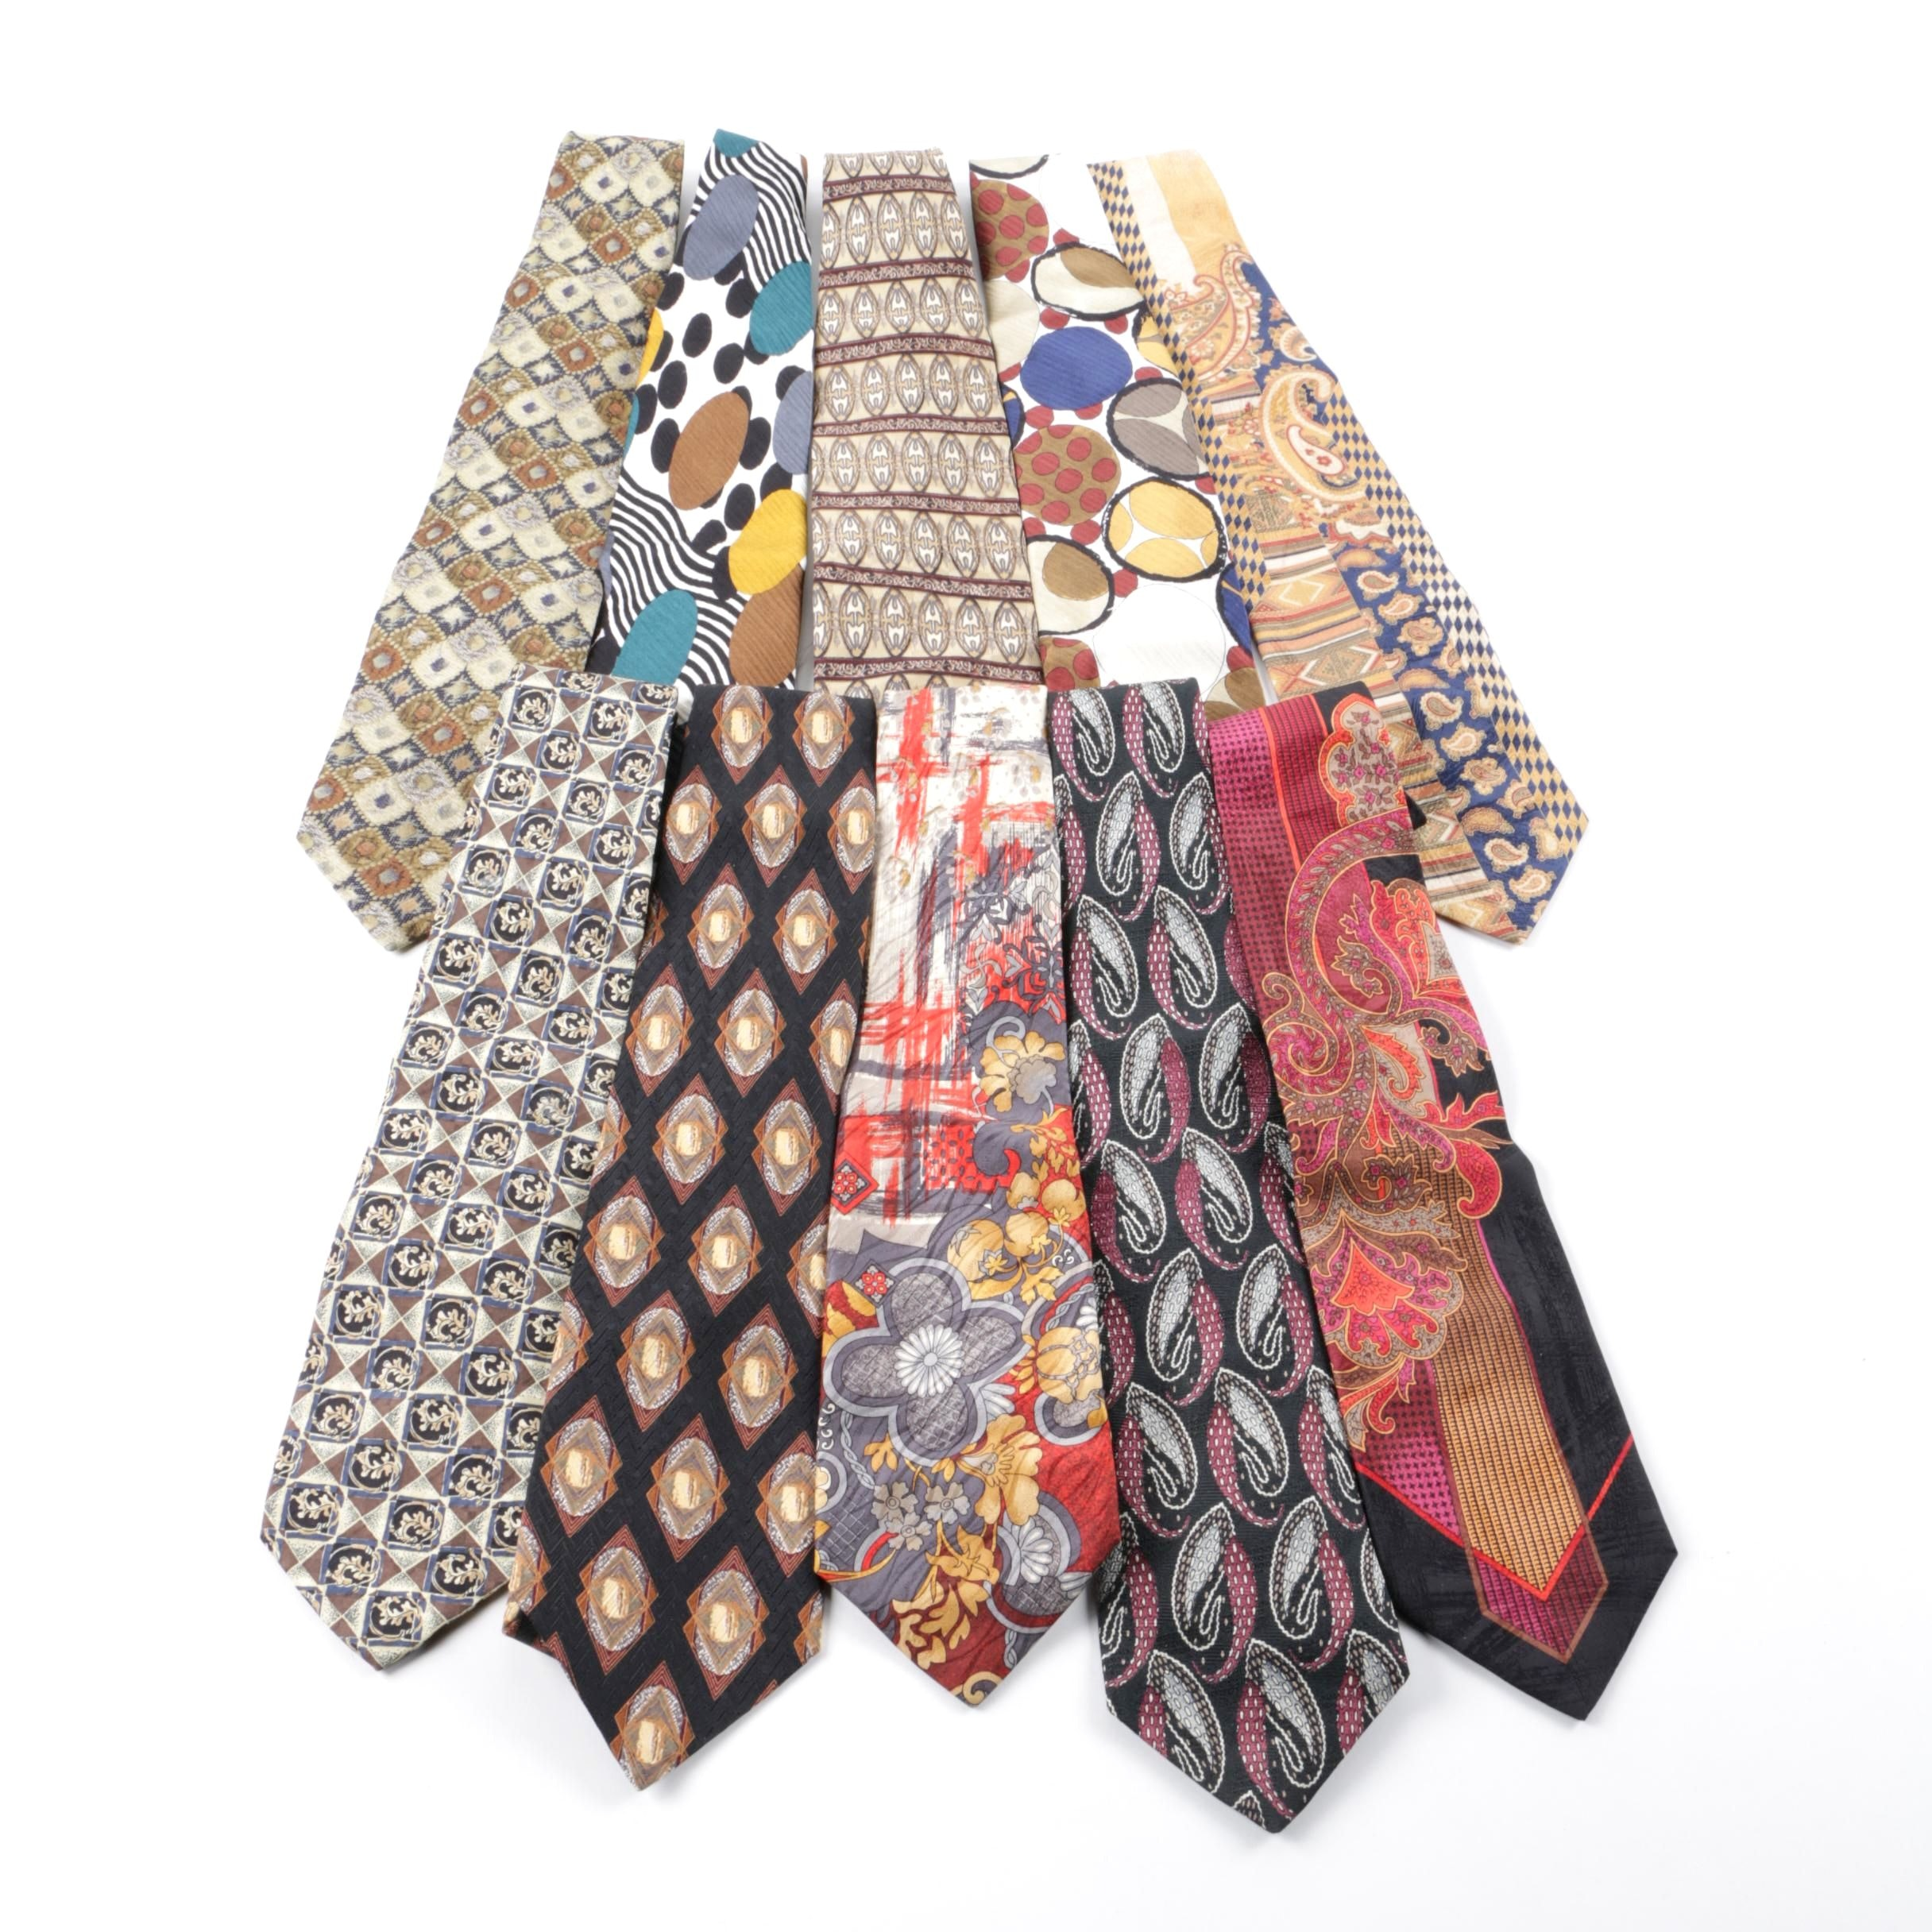 Men's Vintage Tie Assortment